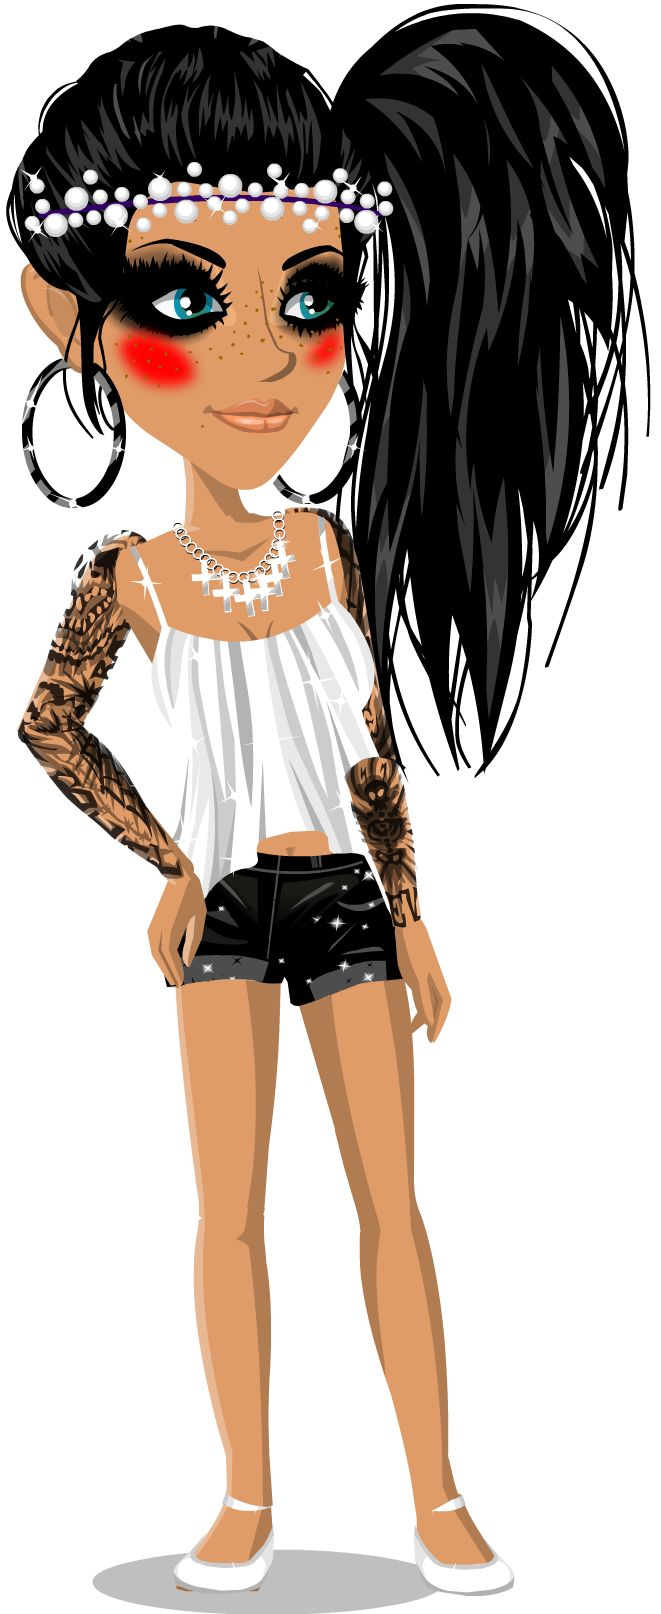 Msp Vip Outfits | msp outfit ideas youtube fashion on moviestarplanet 10 23 14 artspeace msp ...